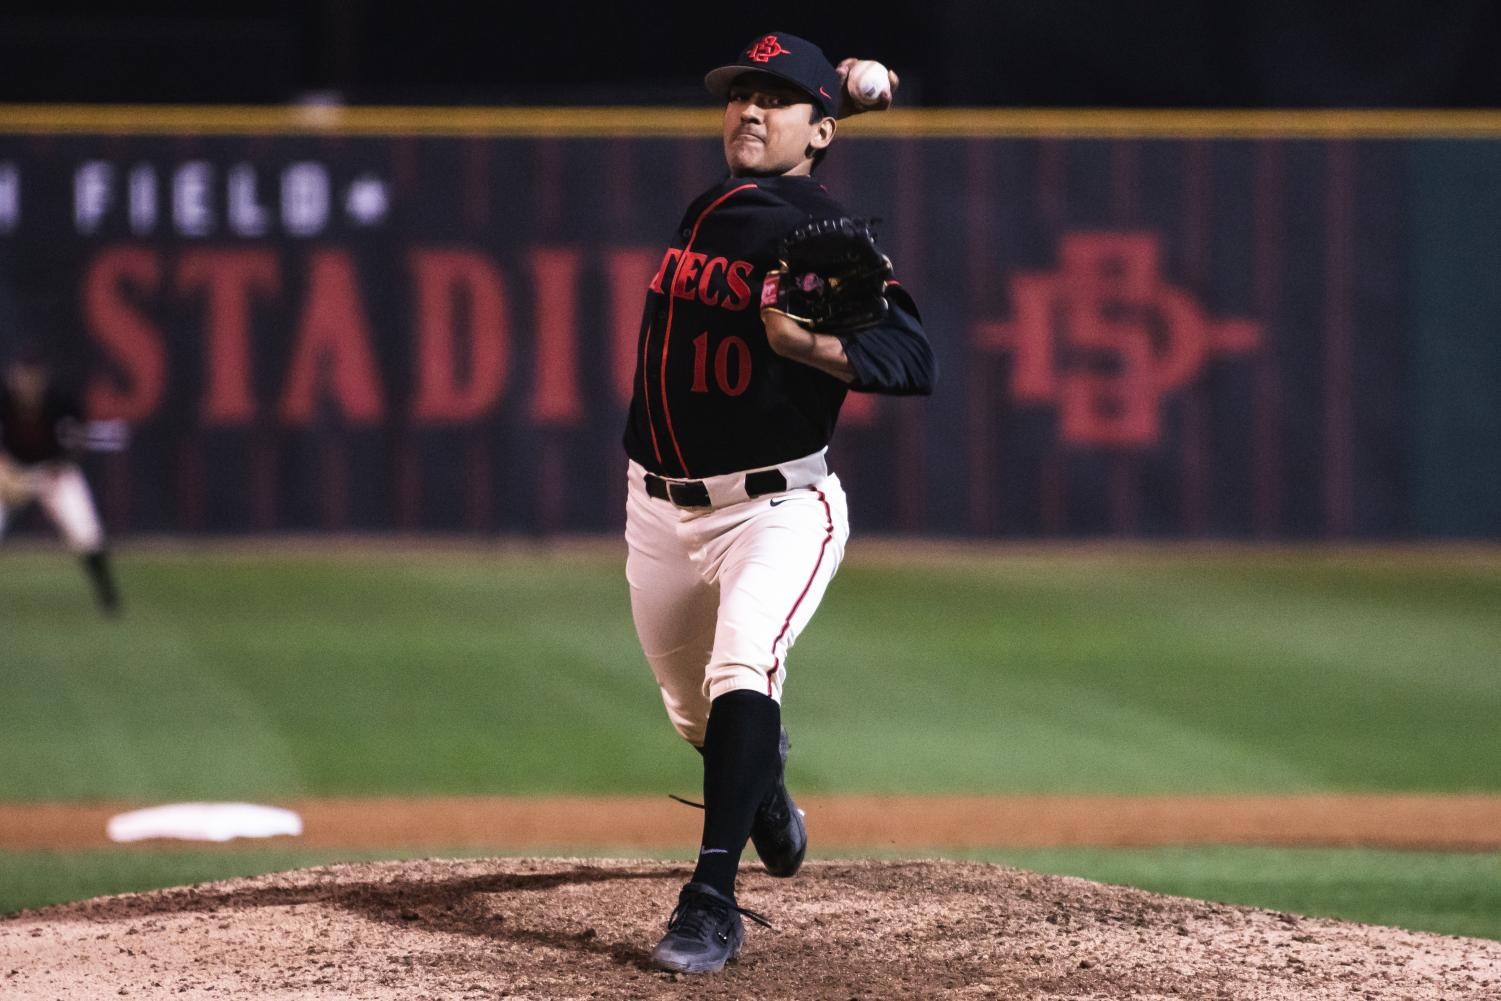 Junior pitcher Adrian Mardueno prepares to throw a pitch during the Aztecs' 4-2 loss to San Diego on Feb. 26 at Tony Gwynn Stadium.